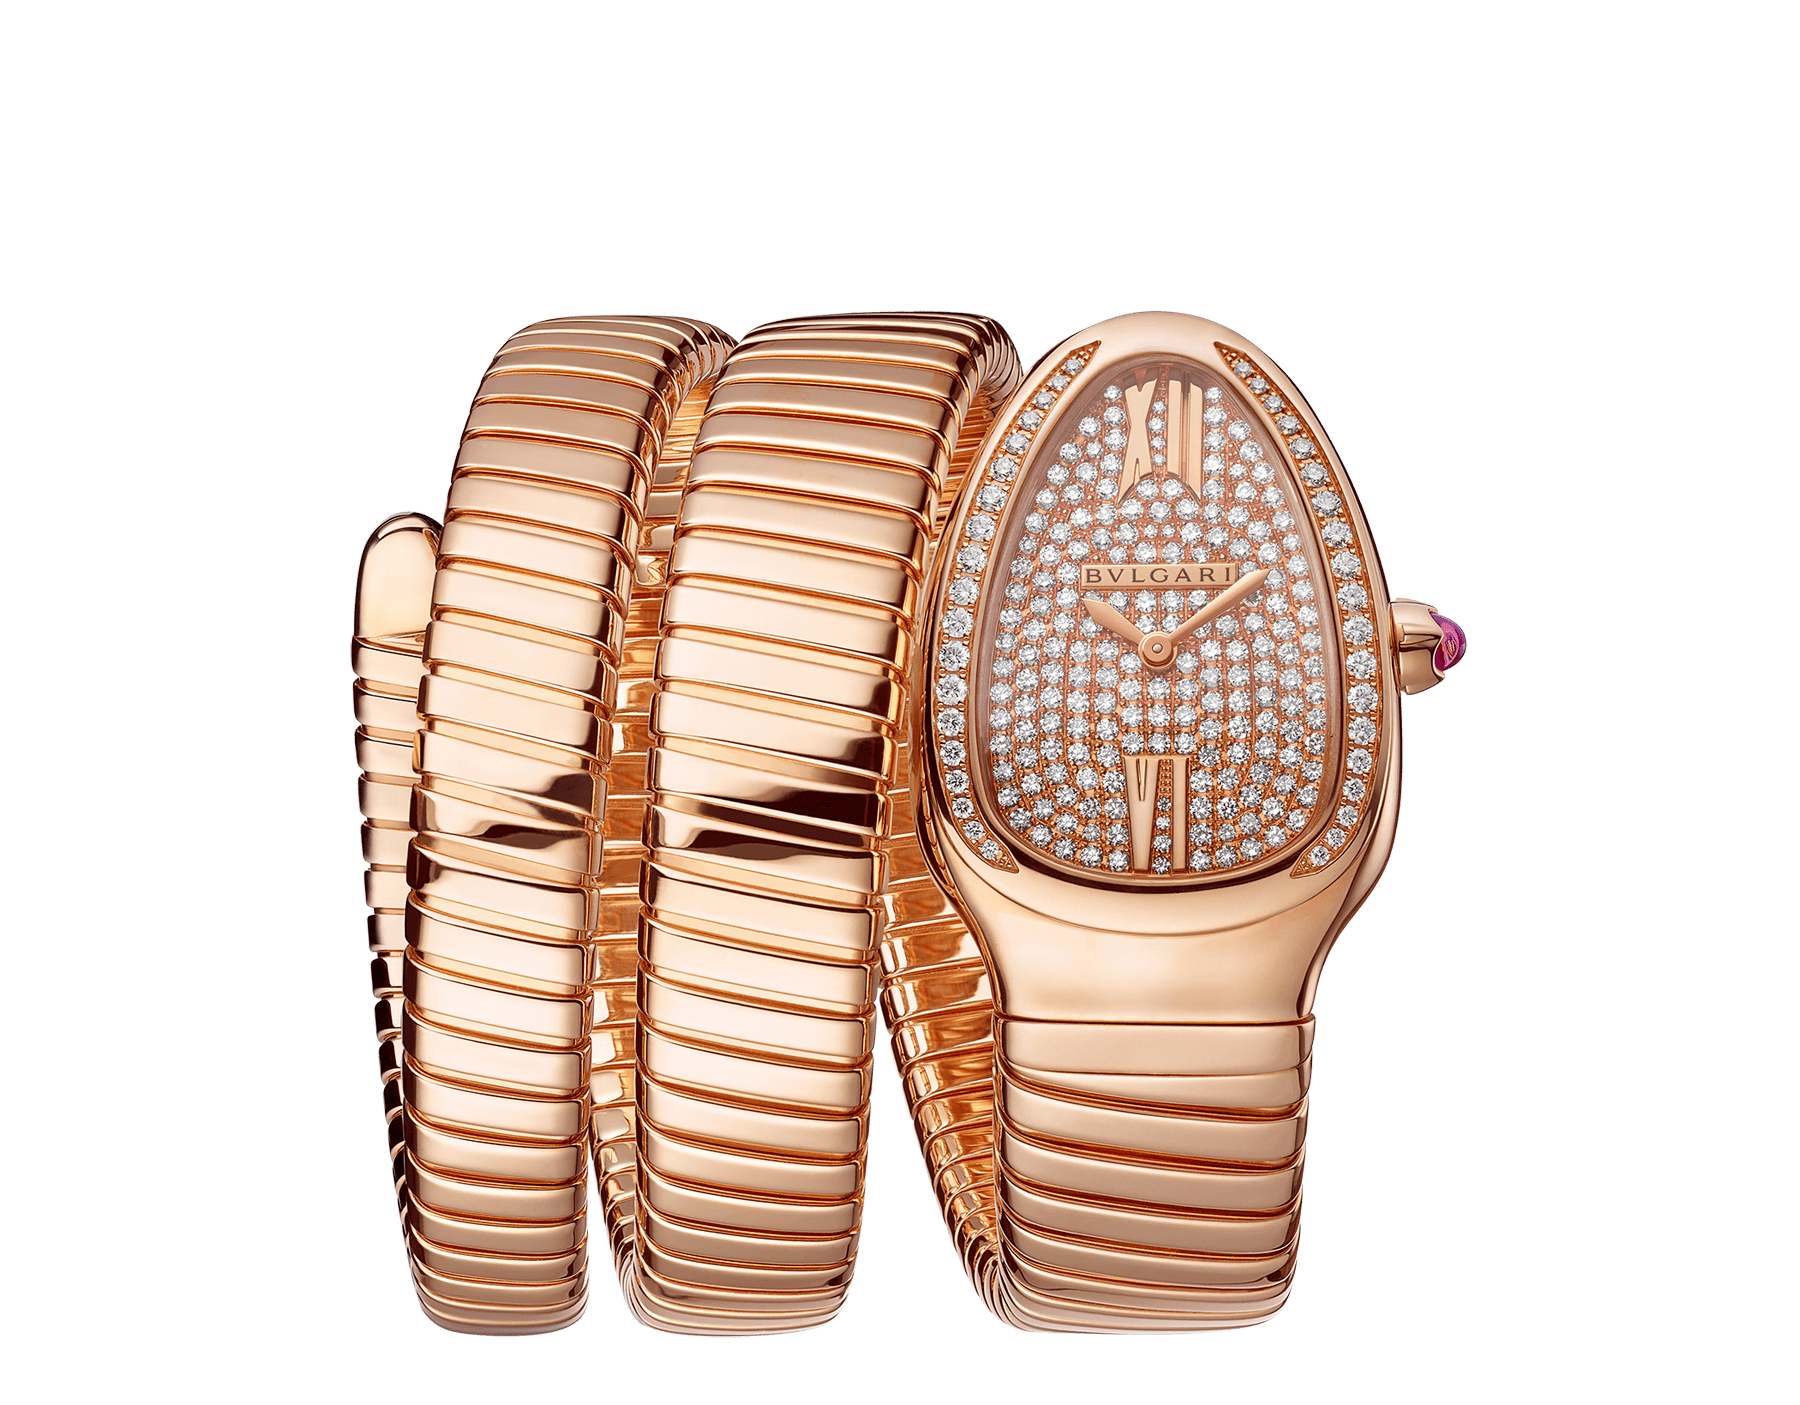 Serpenti Tubogas double spiral watch with 18 kt rose gold case set with brilliant cut diamonds, 18 kt rose gold dial set with full pavé brilliant cut diamonds and 18 kt rose gold bracelet. 101956 image 1